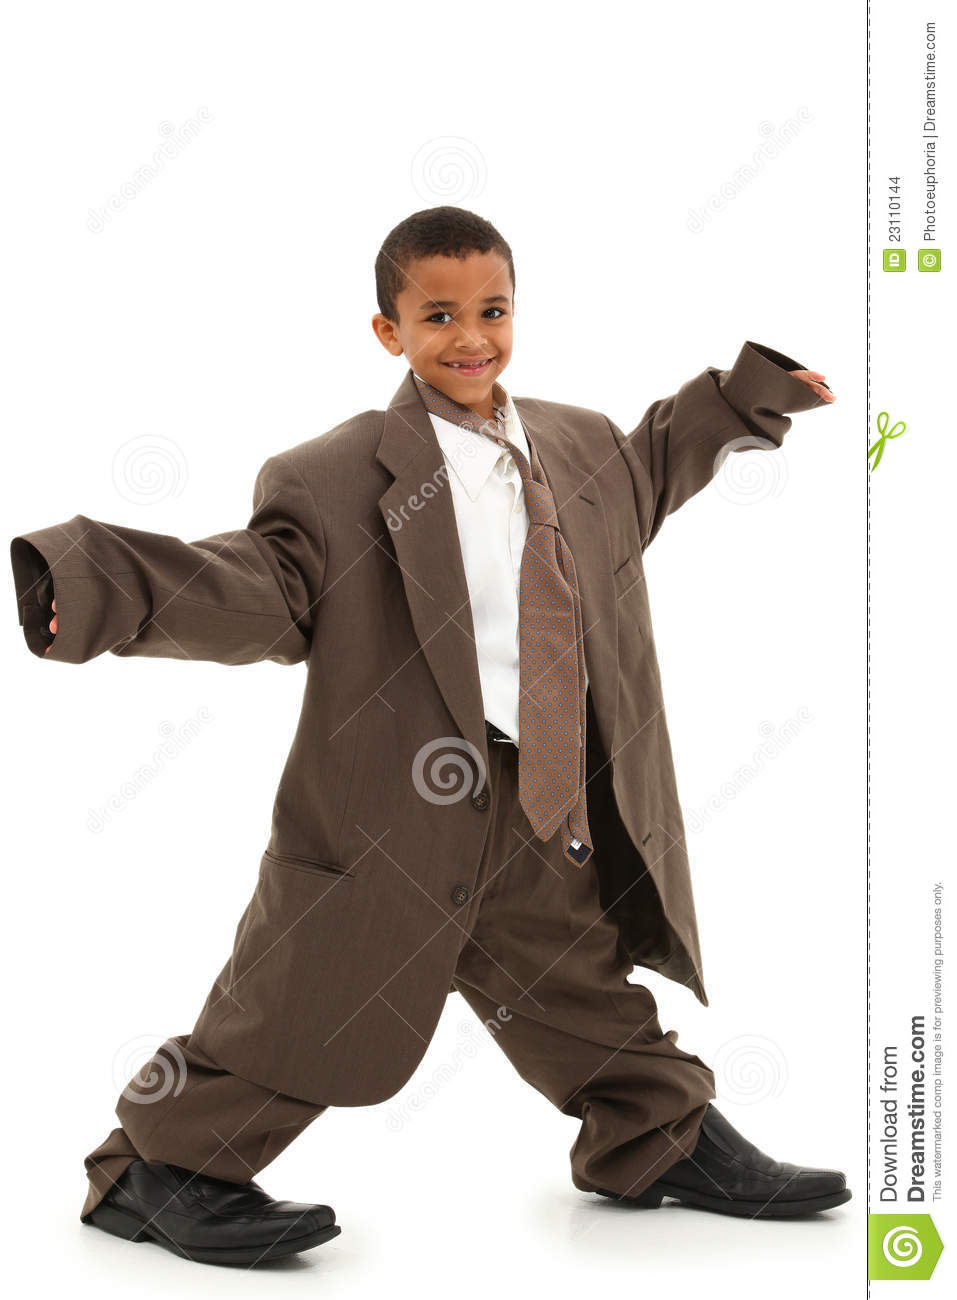 ... Black Boy Child in Baggy Business Suit laughing and walking over white